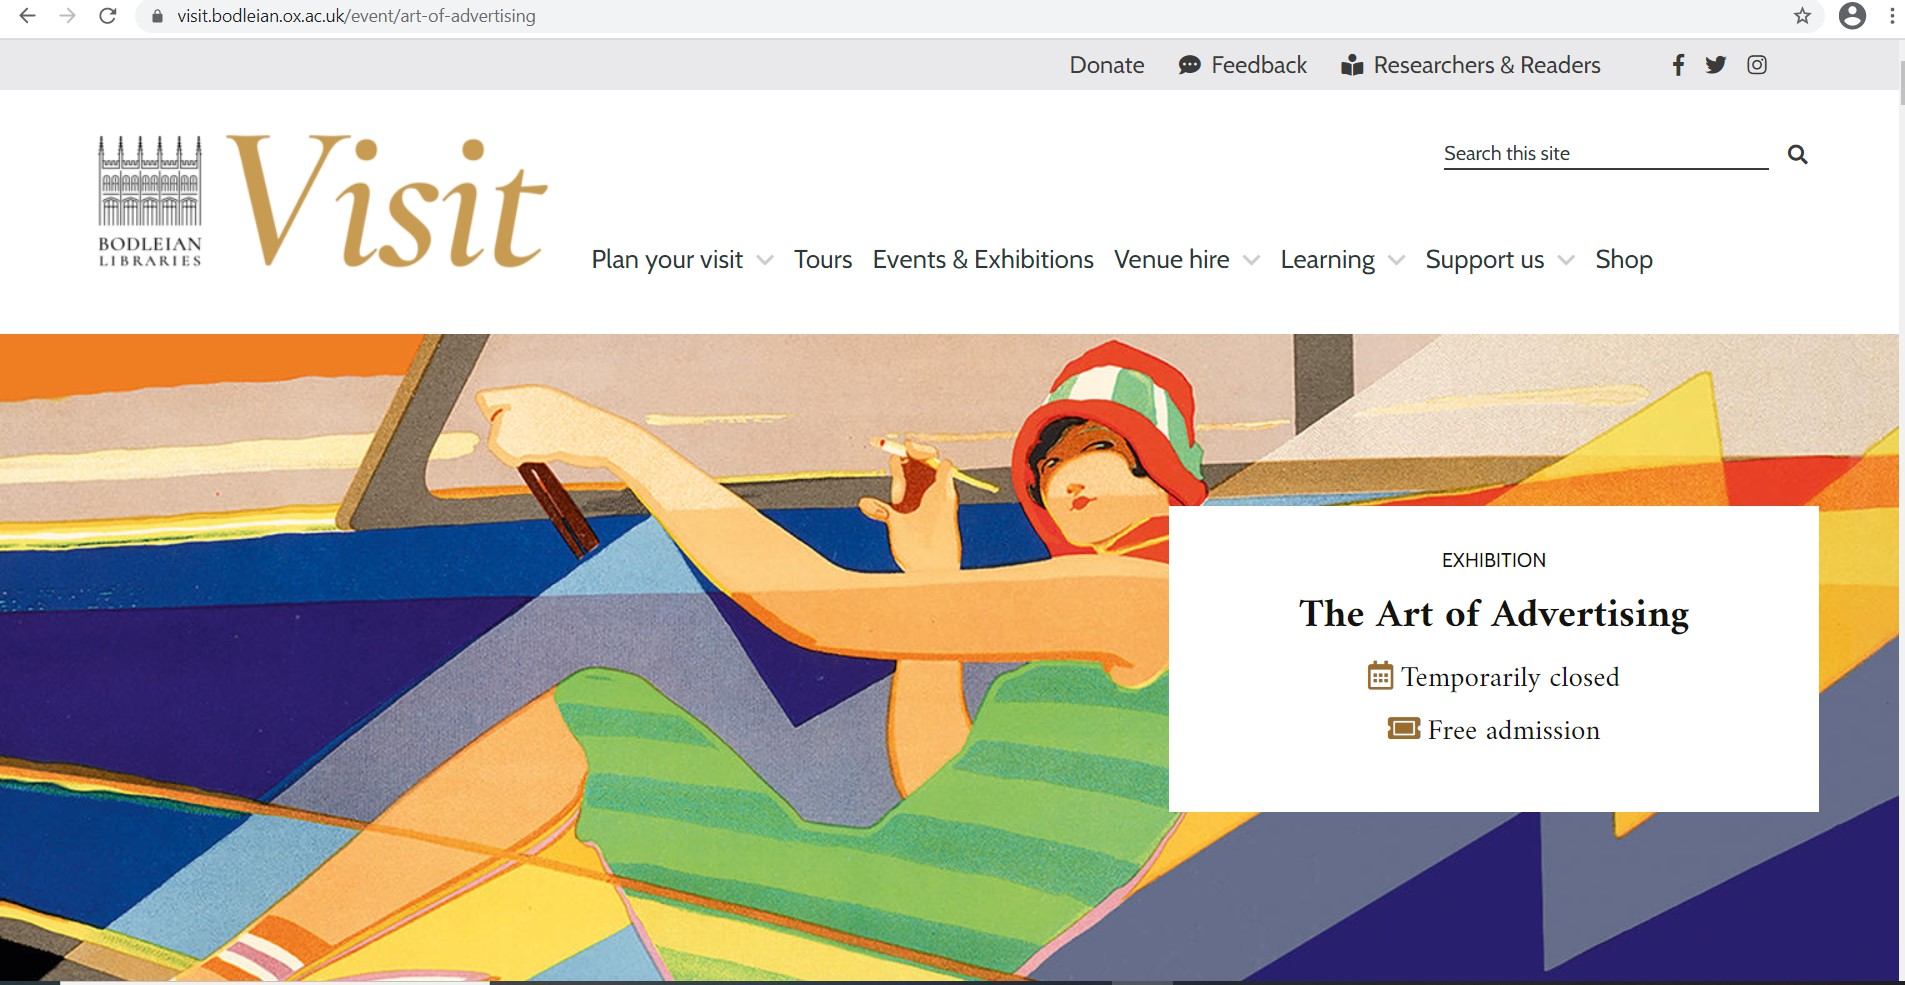 Home page of Art of Advertising exhibition online